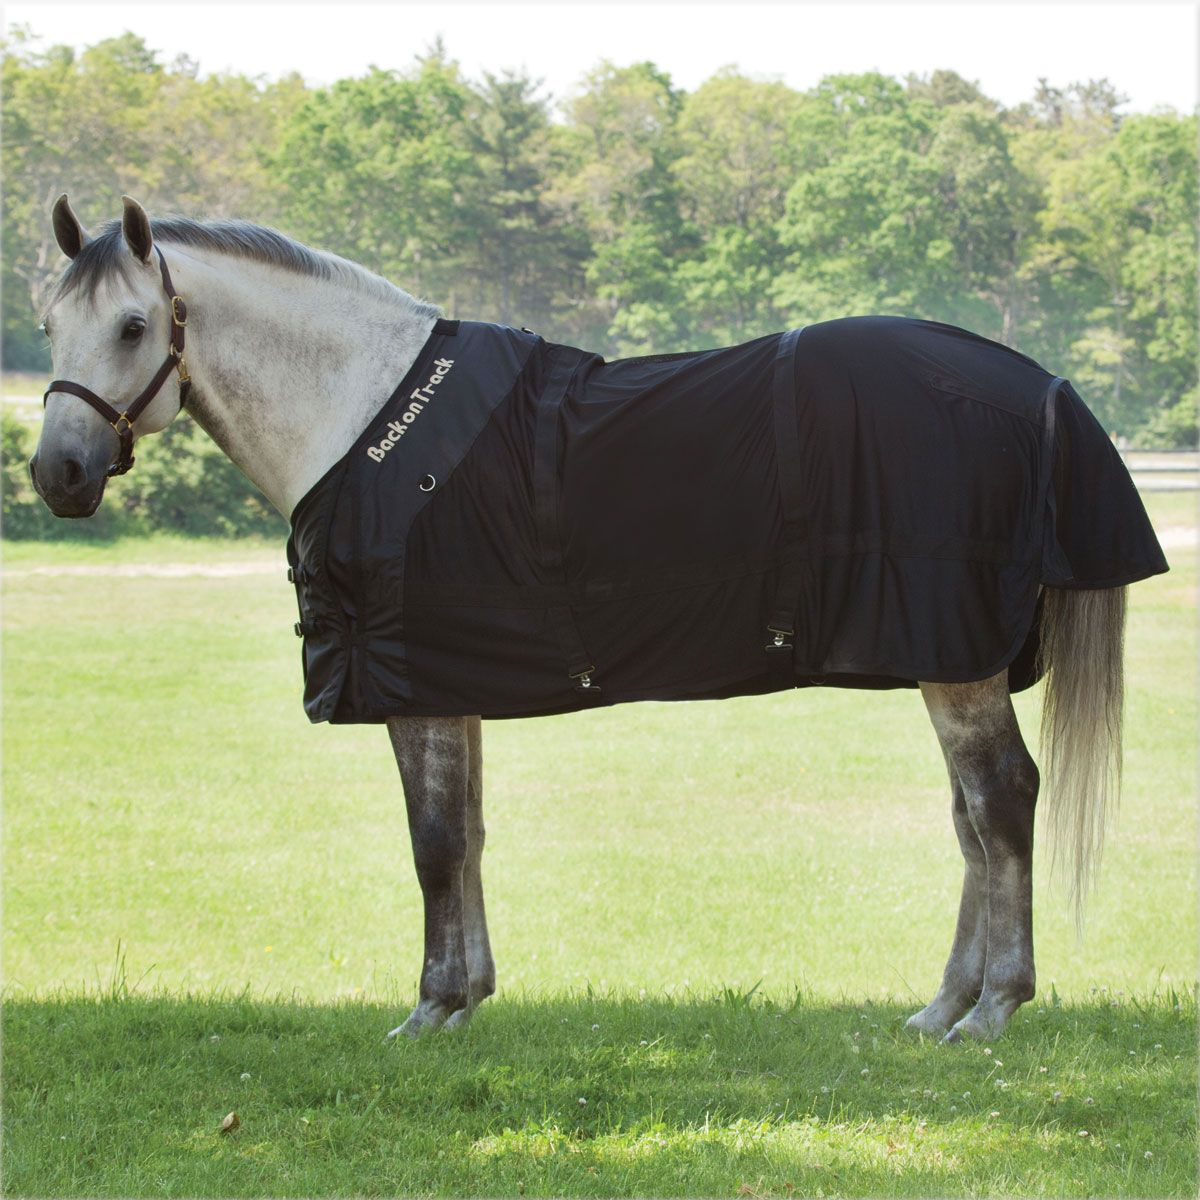 Back On Track Mesh Sheet Horse Sheets From Smartpak Equine Horse Blankets Horses Equestrian Outfits